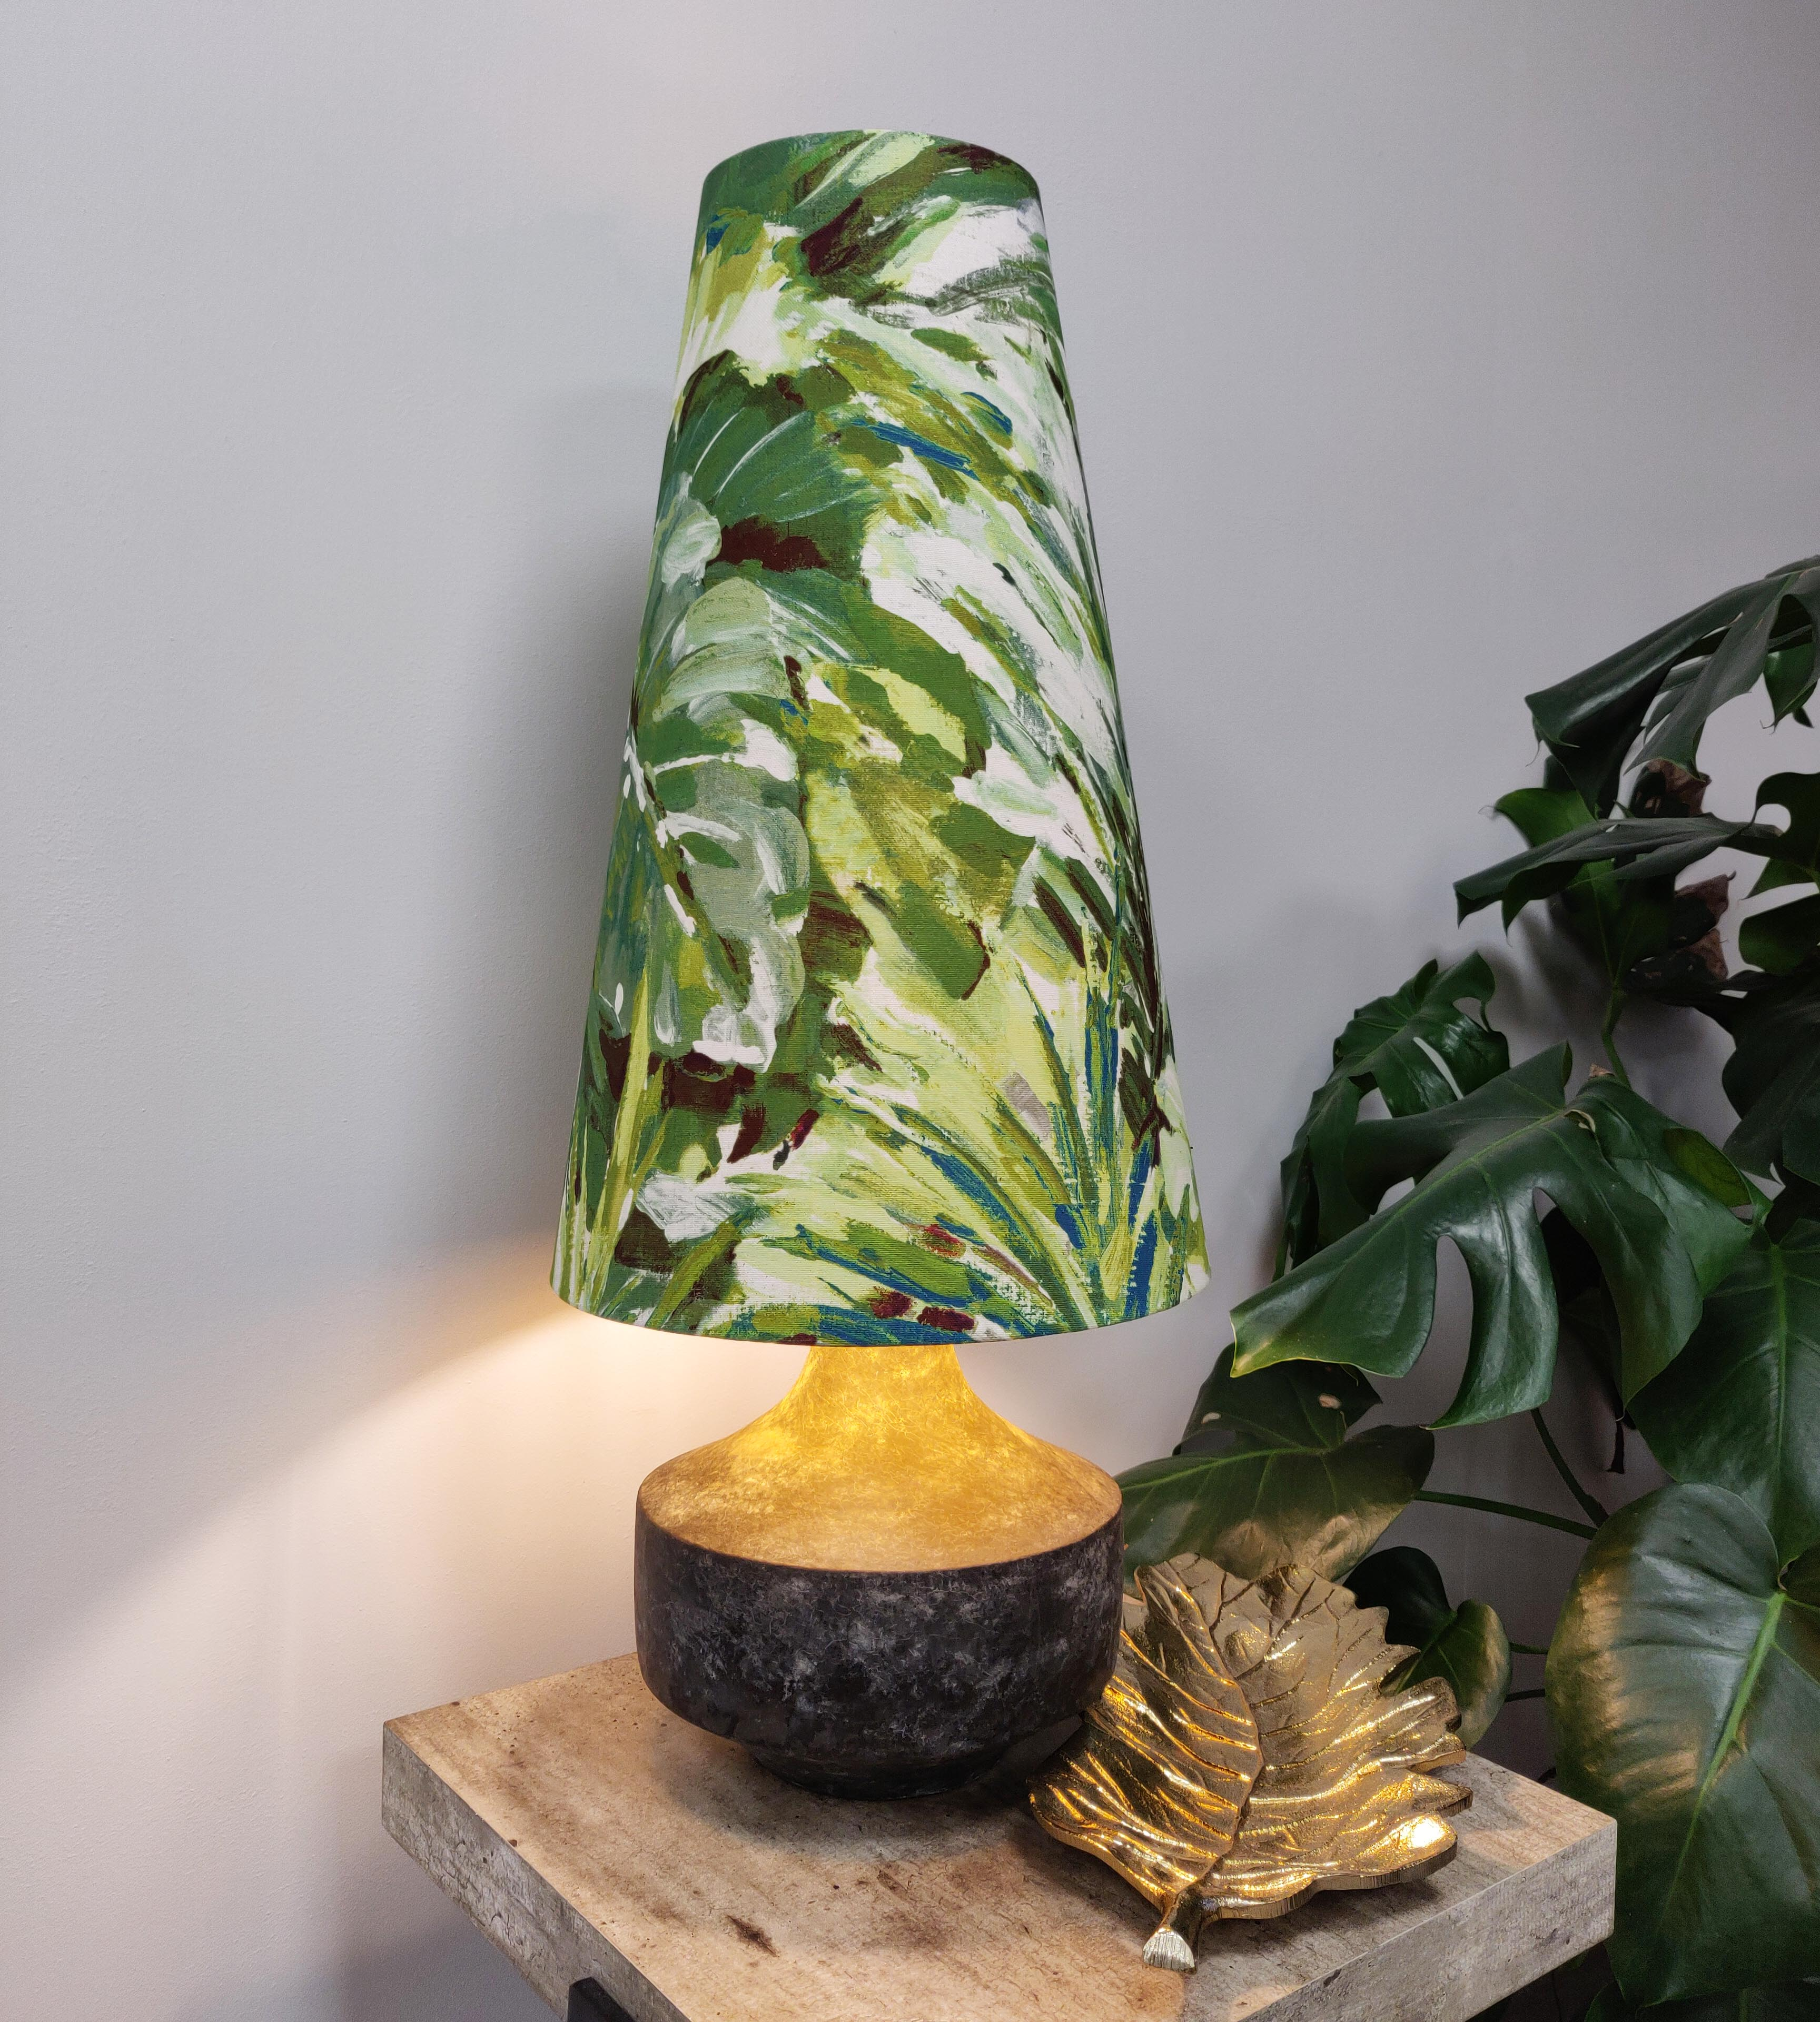 Extra Tall Tropical Lampshade in a Conical Cone Design